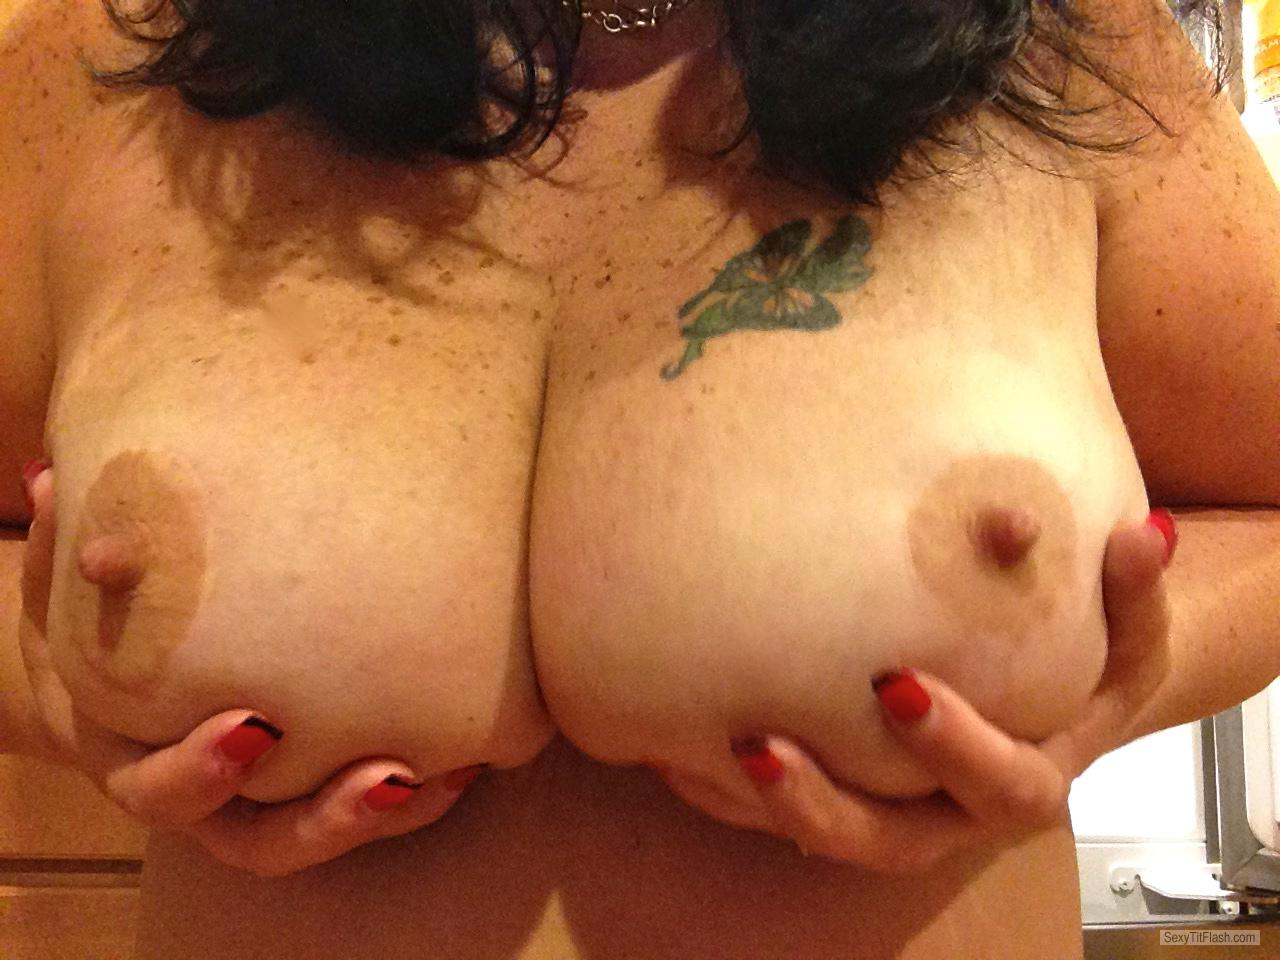 Tit Flash: My Big Tits (Selfie) - Raven from United States